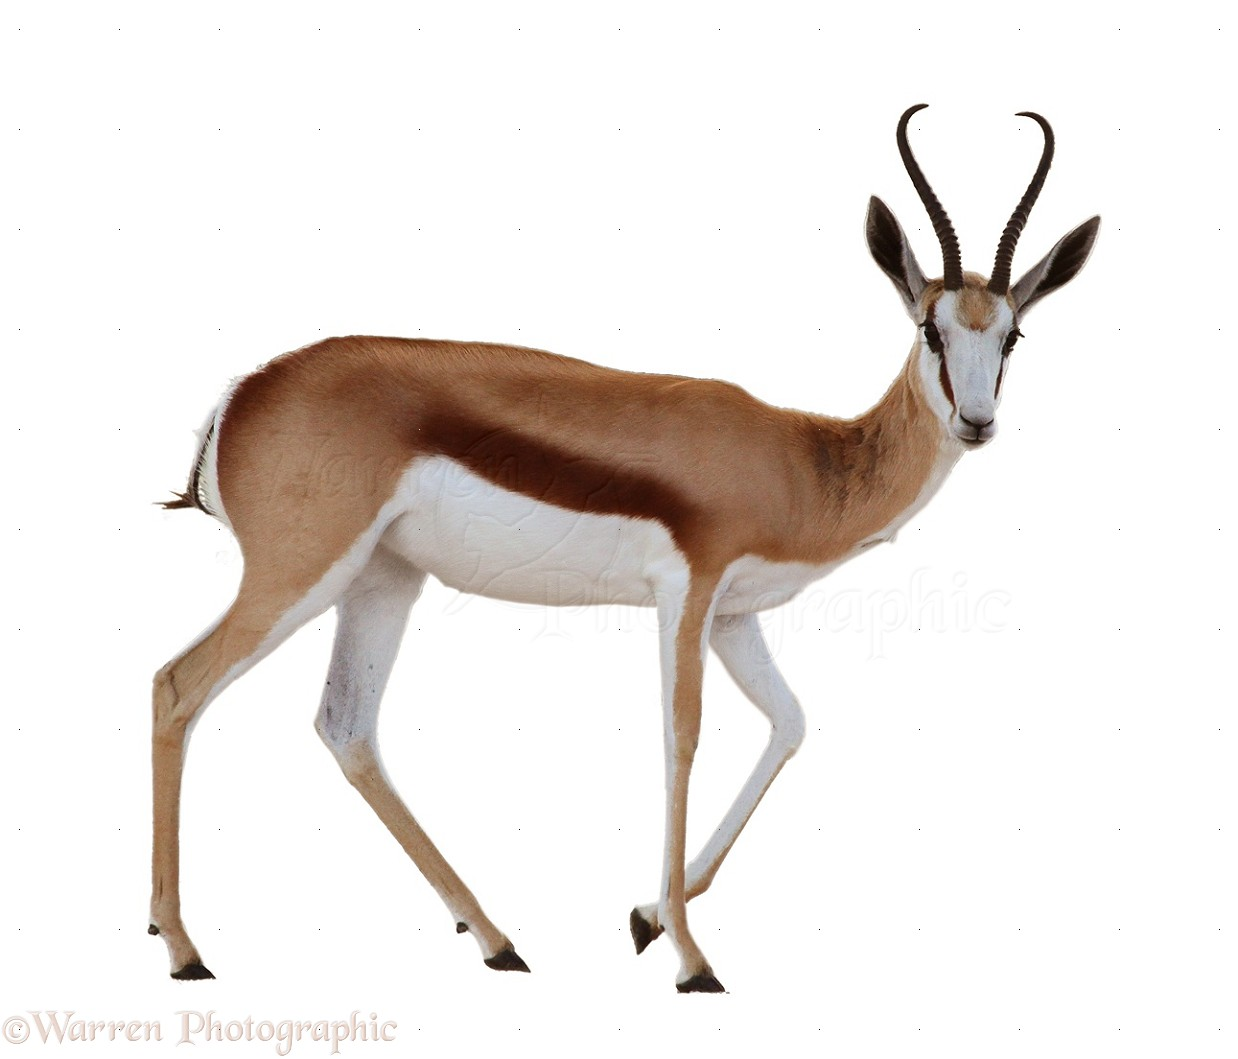 springbok facts  history  useful information and amazing pictures african american clipart religious african american clipart religious